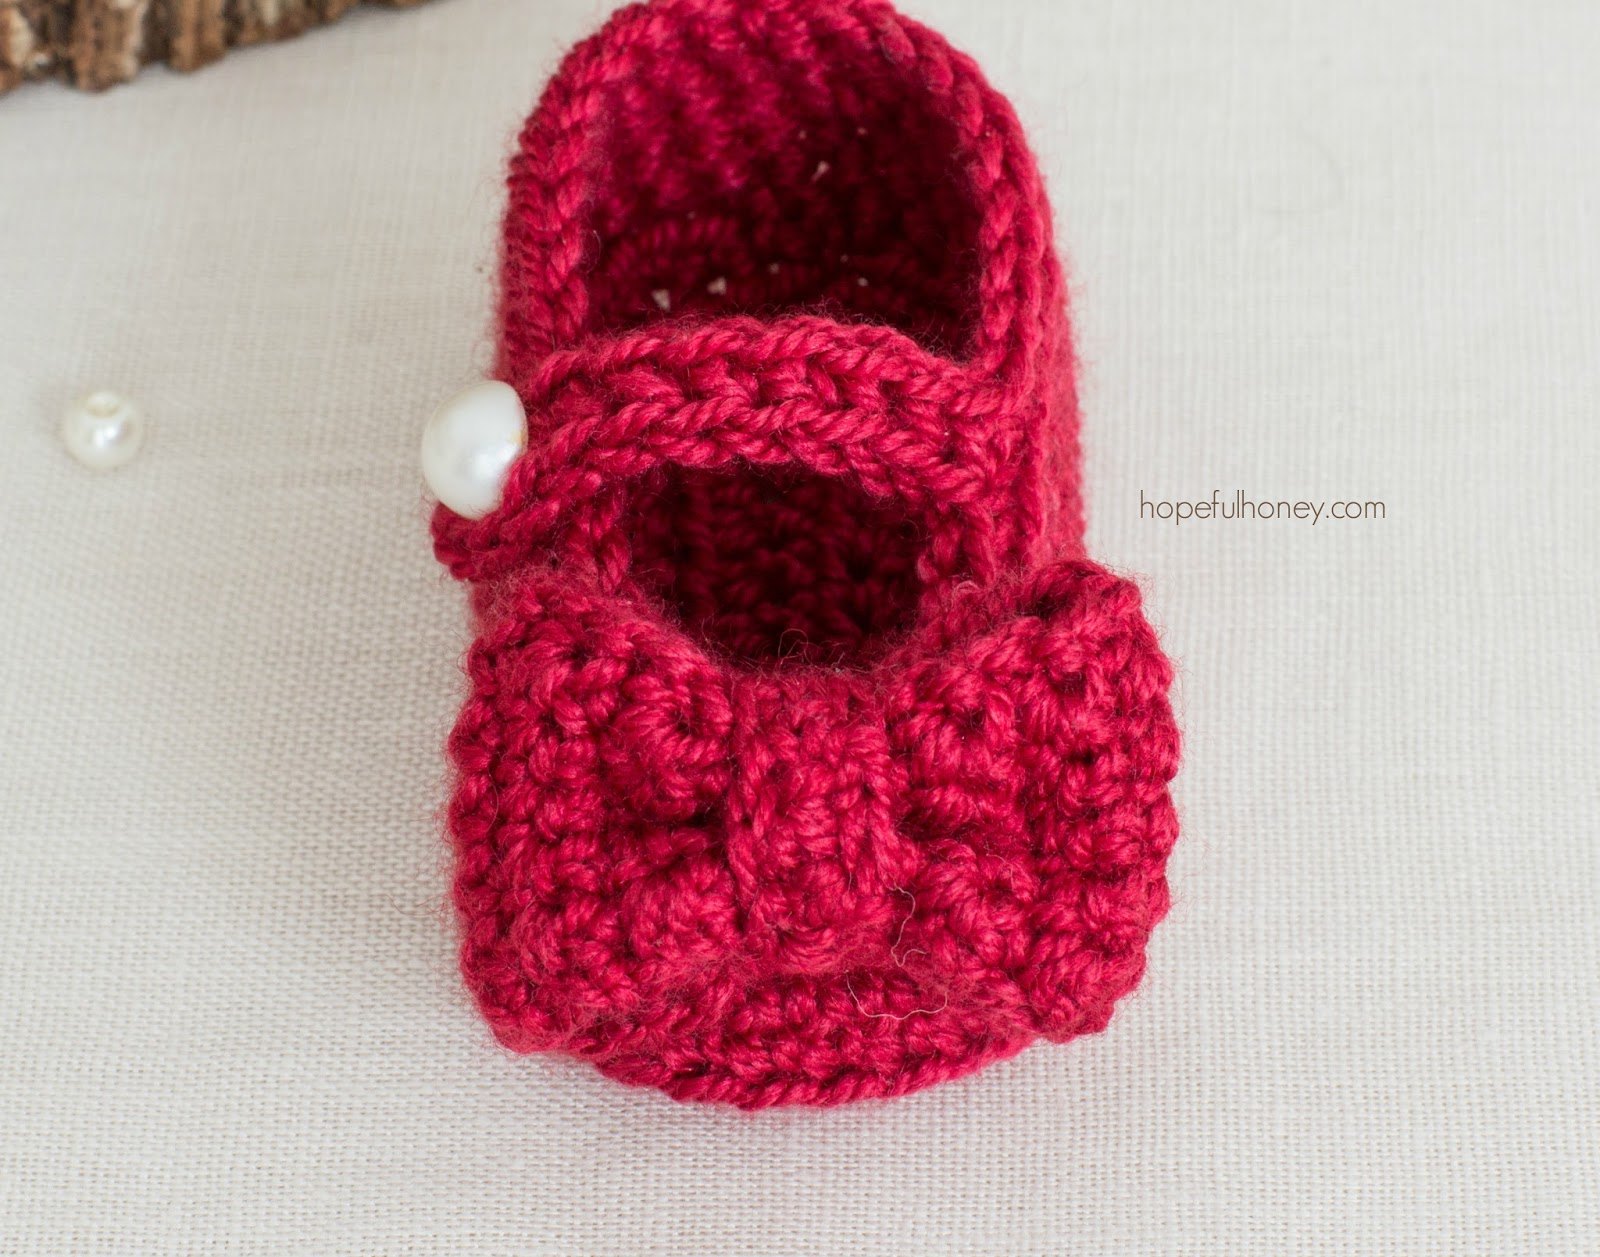 Free Crochet Patterns Mary Jane Booties : Hopeful Honey Craft, Crochet, Create: Ruby Red Mary Jane ...